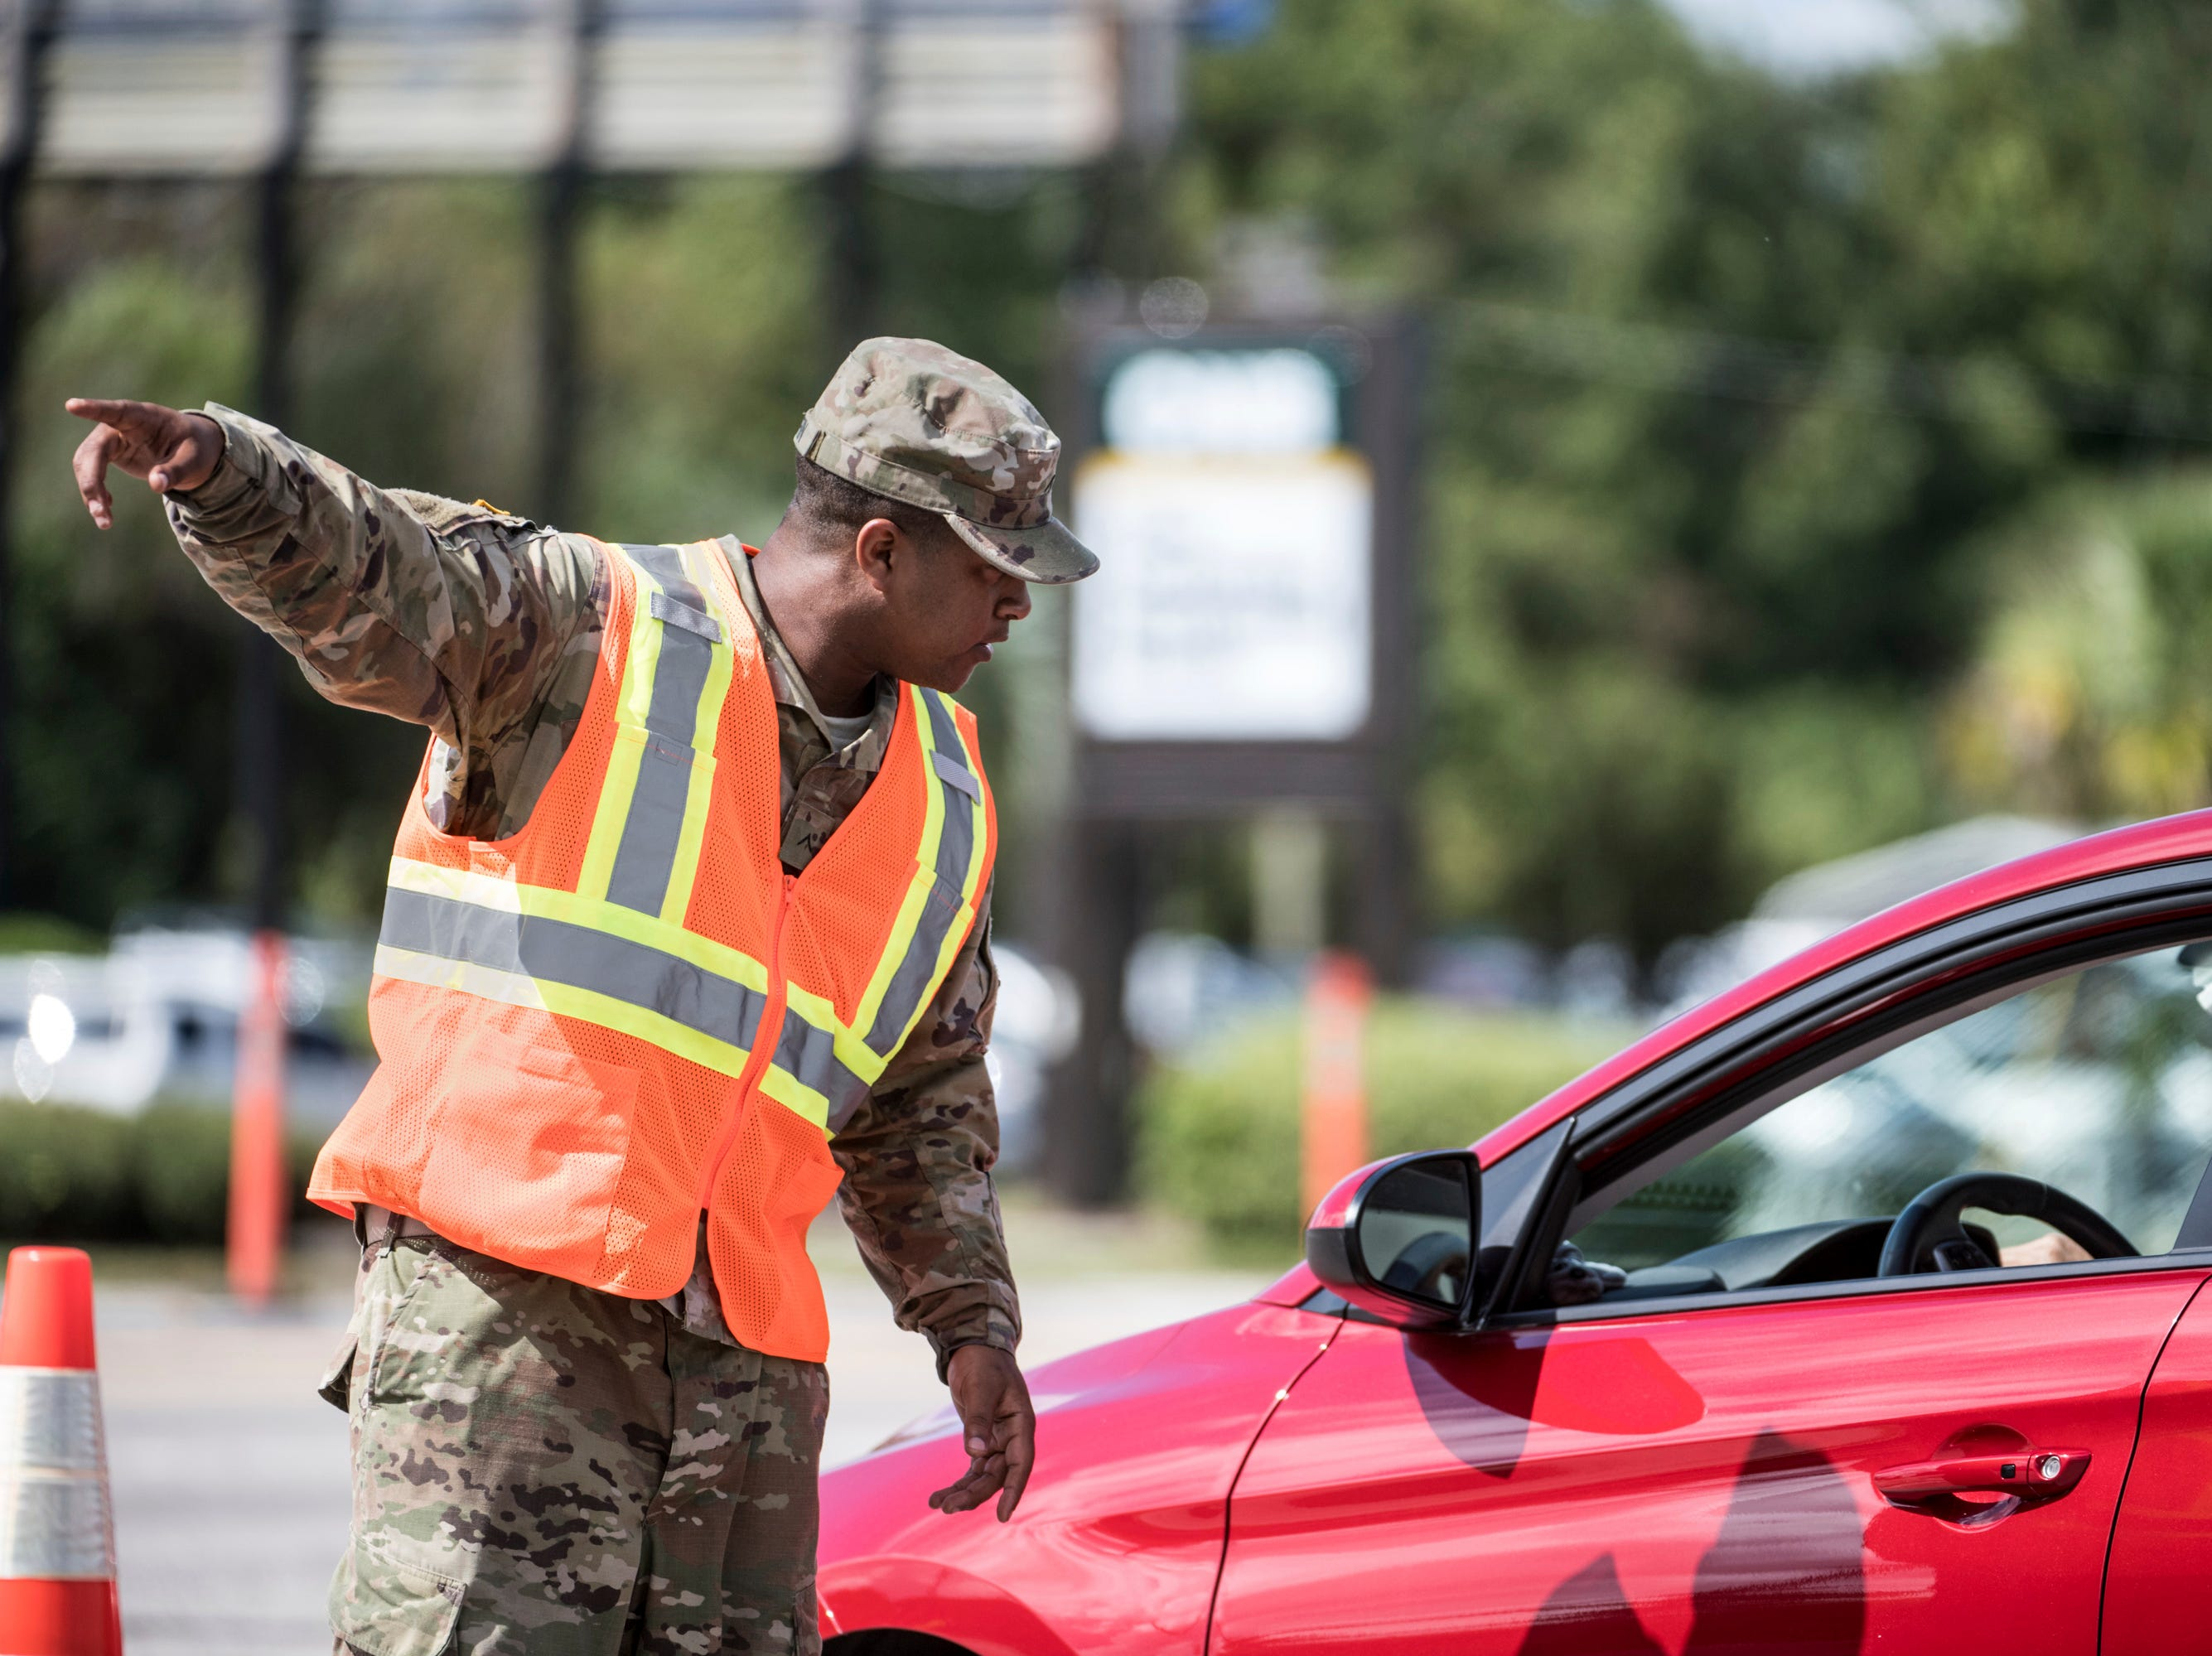 A National Guardsman directs traffic onto U.S. Highway 501 as Hurricane Florence approaches the East Coast Wednesday, Sept. 12, 2018, near Conway, S.C. Time is running short to get out of the way of Hurricane Florence, a monster of a storm that has a region of more than 10 million people in its potentially devastating sights.